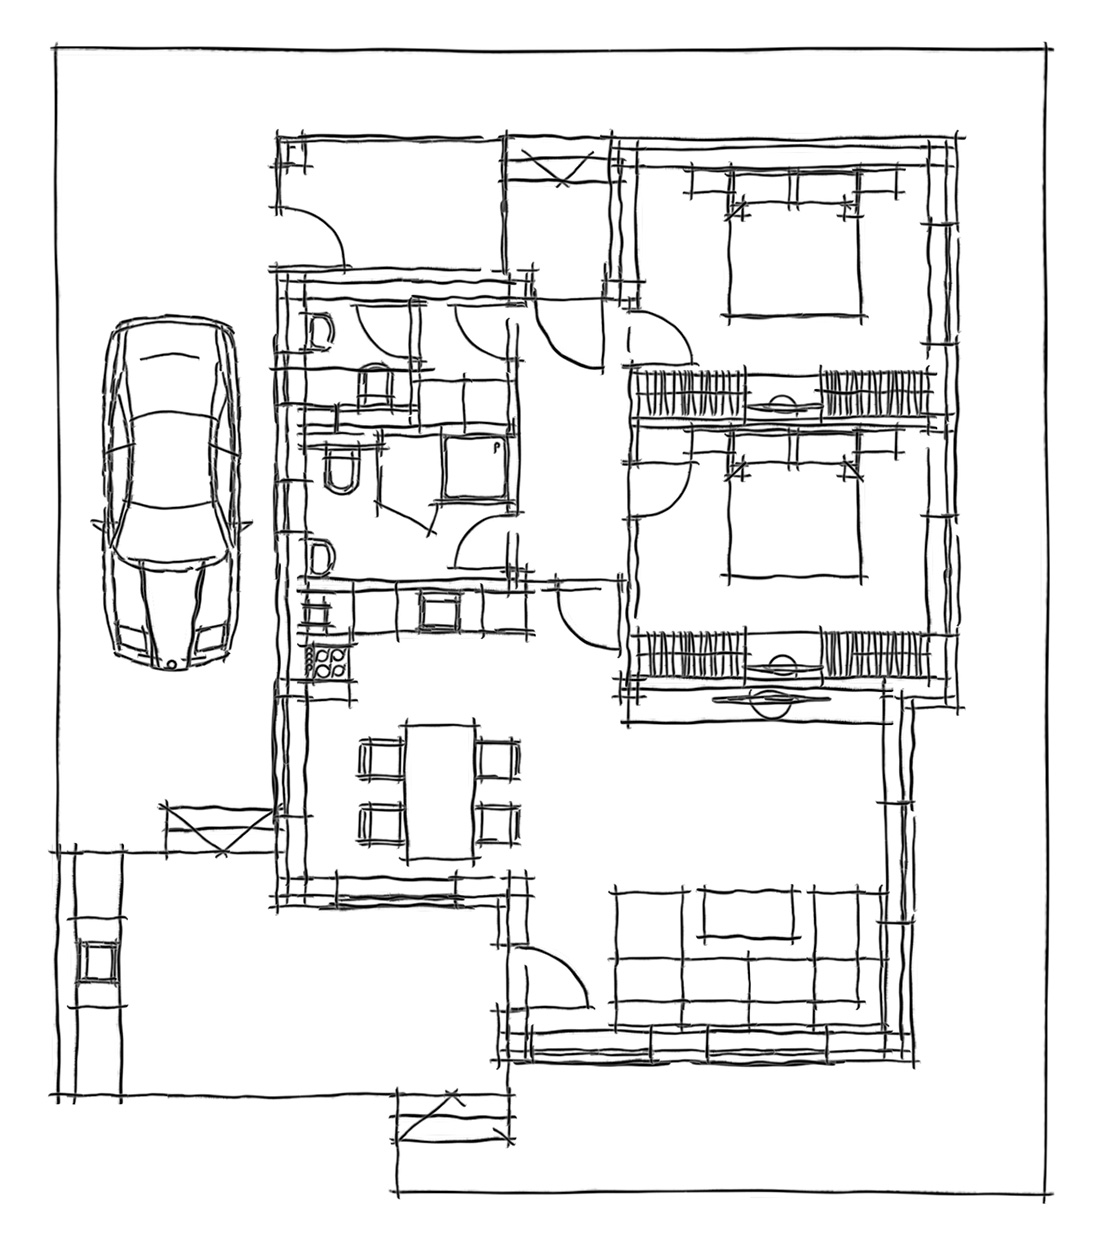 Matricaria - A one family house, Built-up area: 92.4 sq. m., Canopy: 18.7 sq. m., Terrace: 12.2 sq. m.